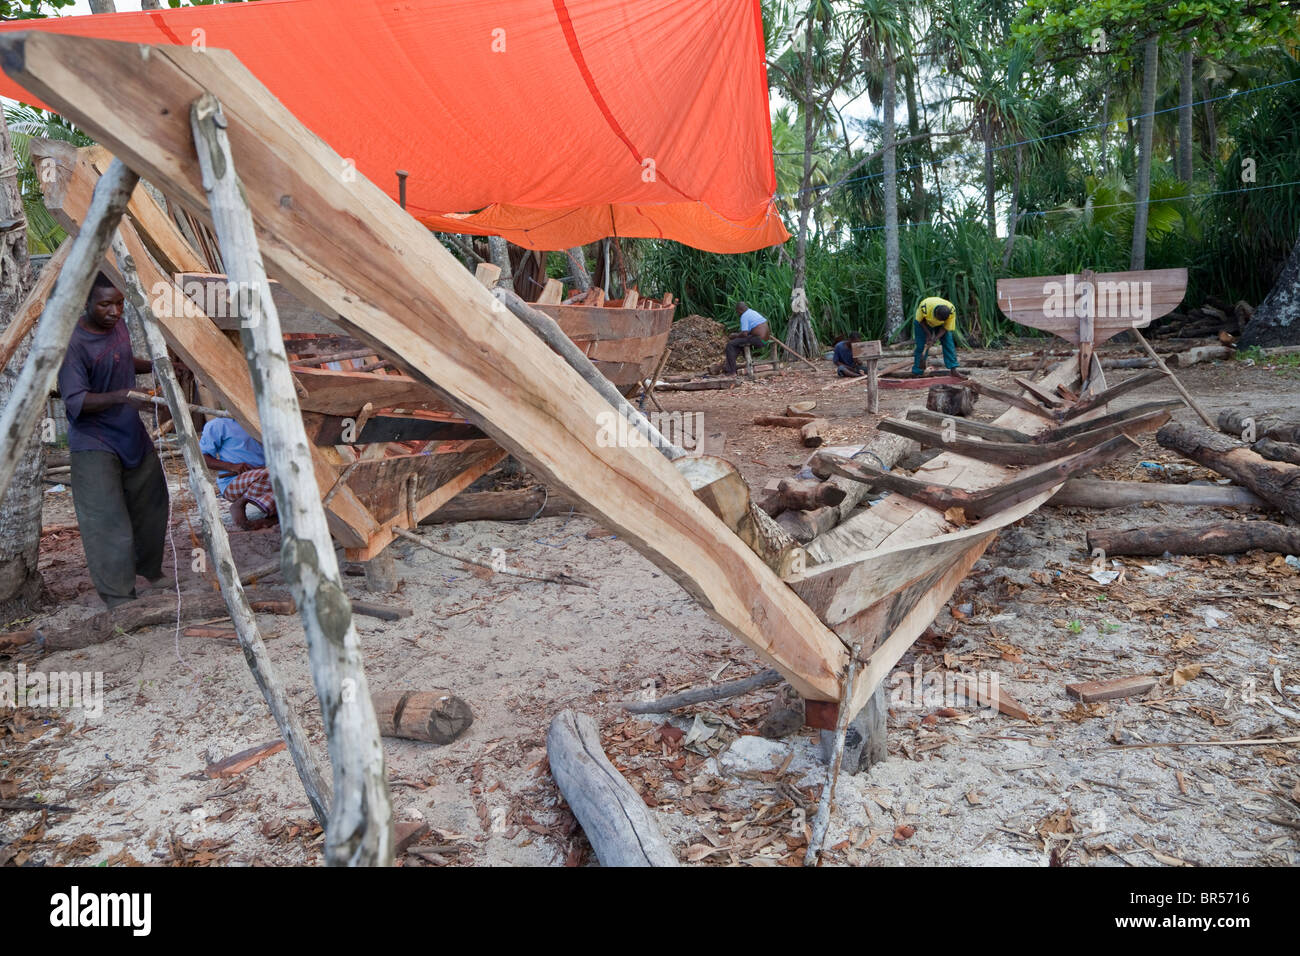 Nungwi, Zanzibar, Tanzania. Keel of a Dhow Under Construction, Boat Building. - Stock Image